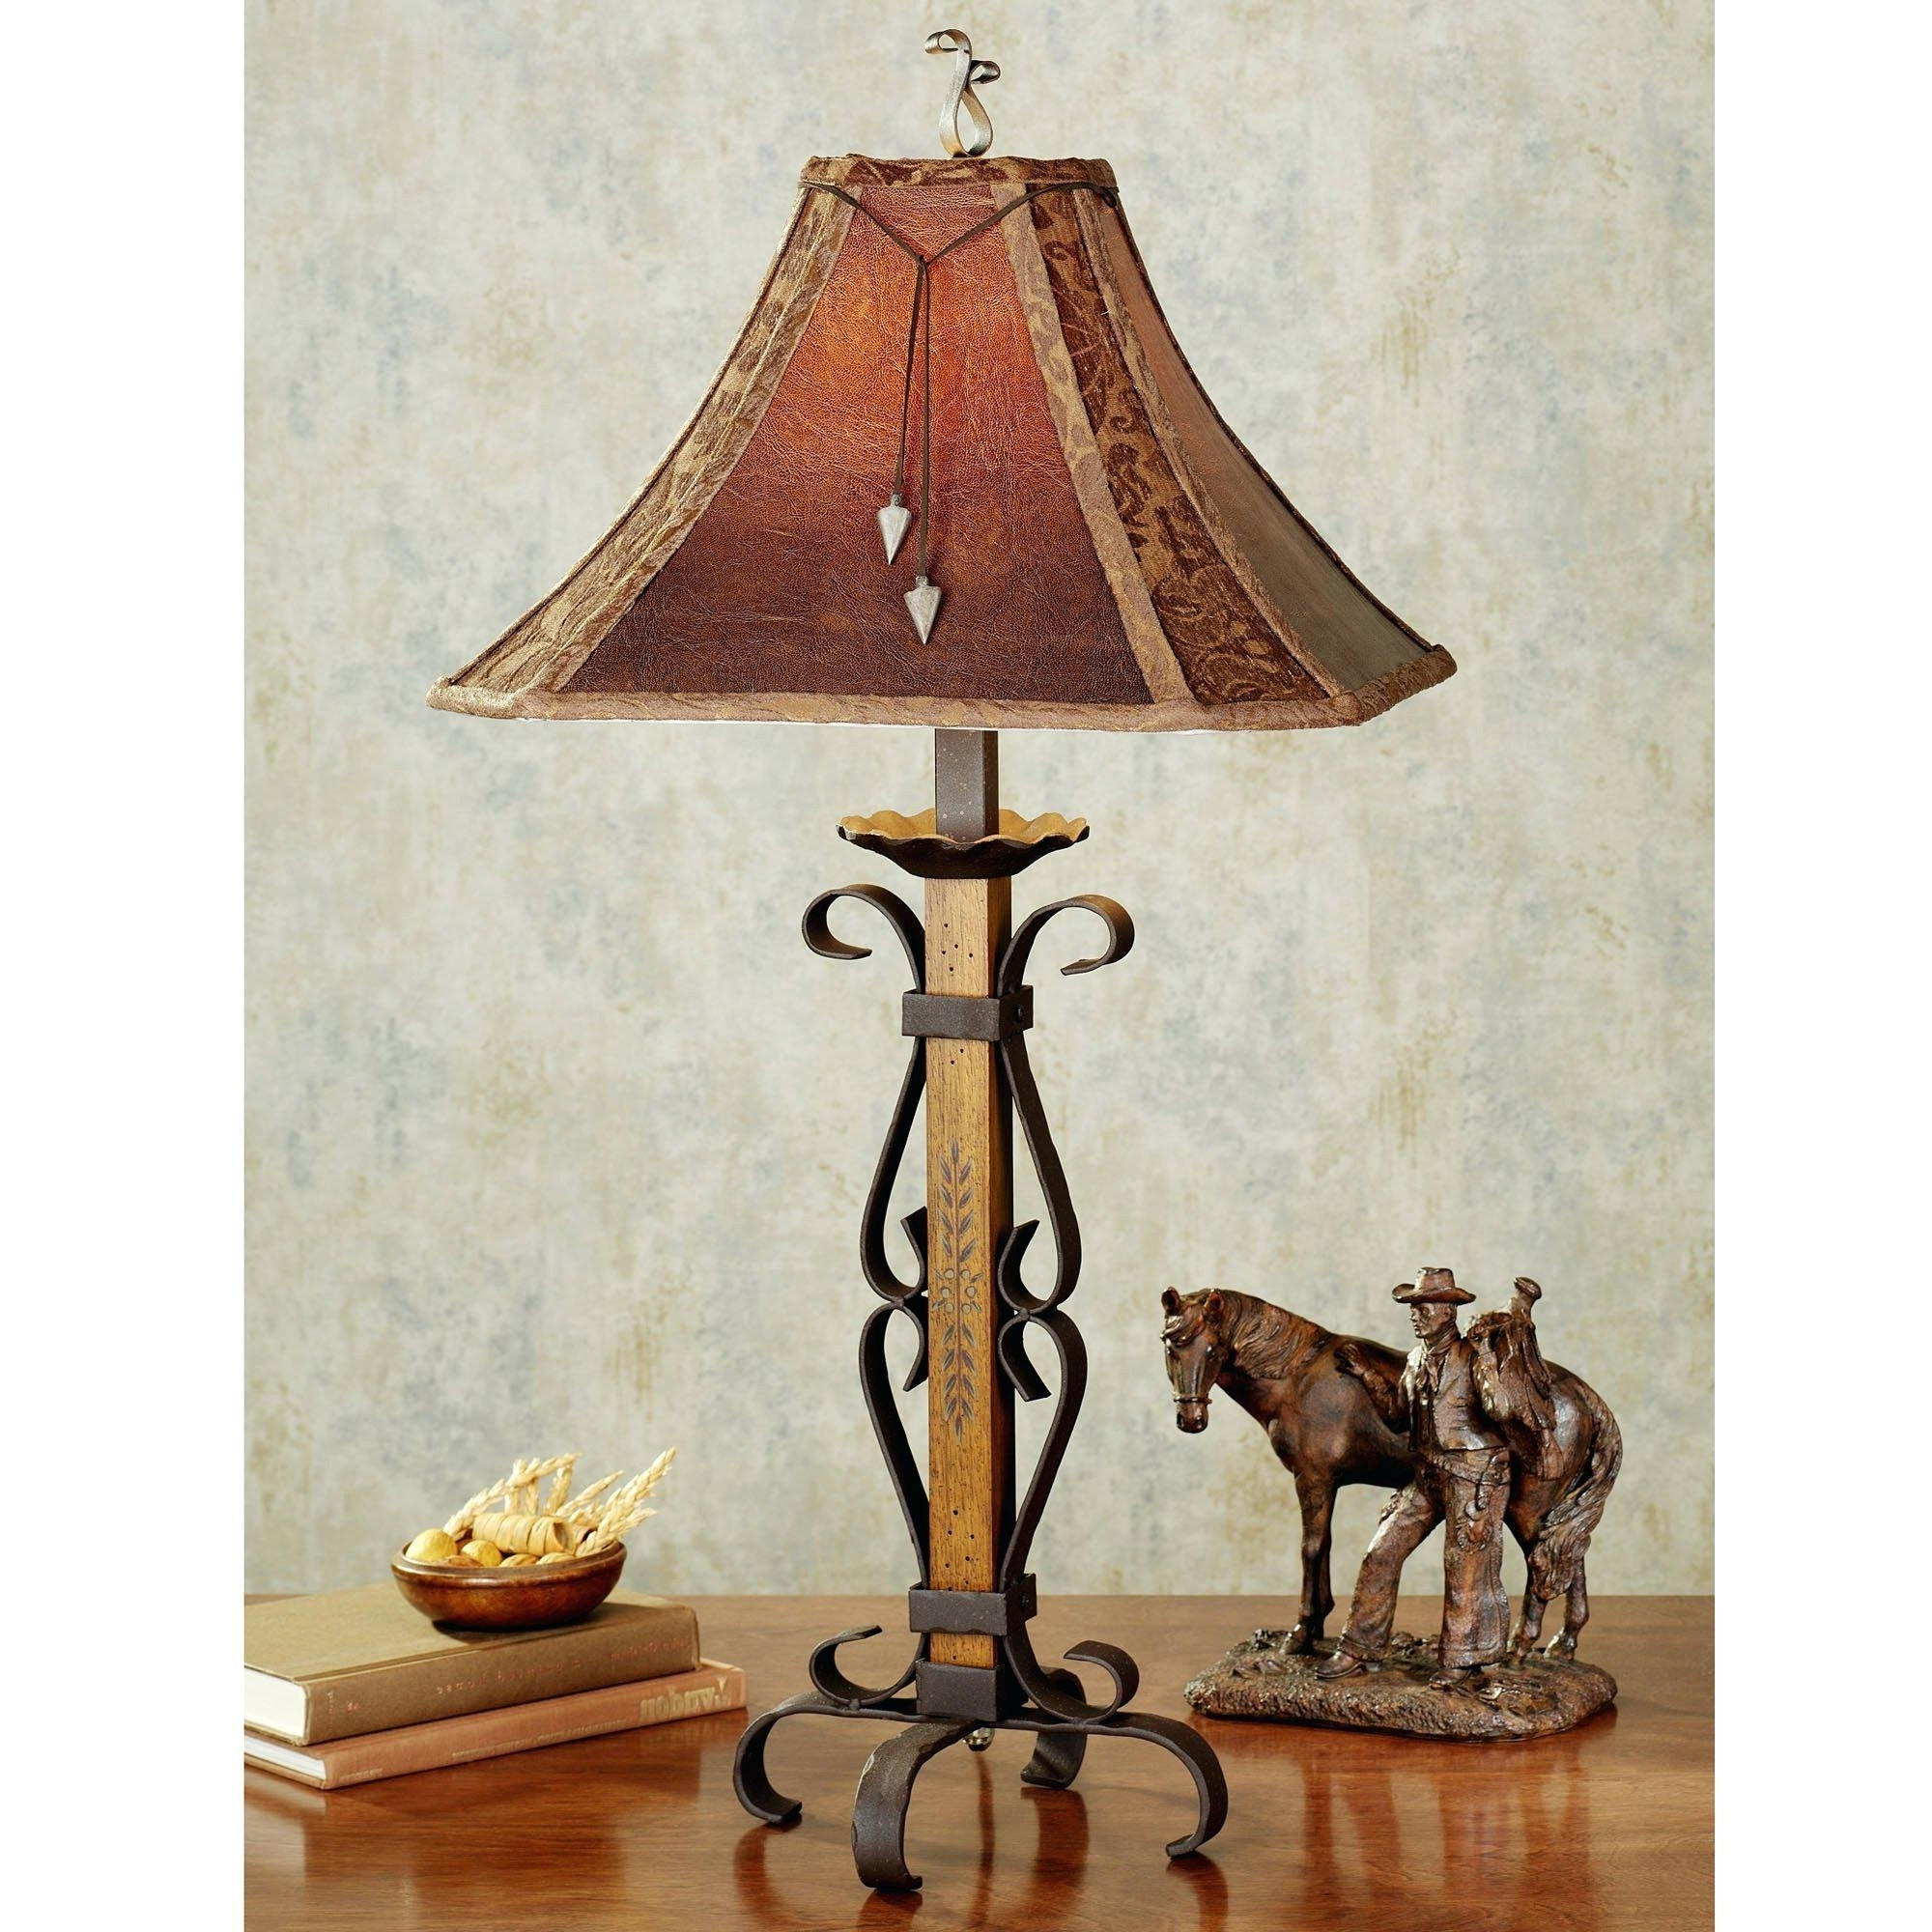 Top 68 Skookum Tuscan Style Table Lamps Old World Vintage For Living Intended For Latest Tuscan Table Lamps For Living Room (View 6 of 20)